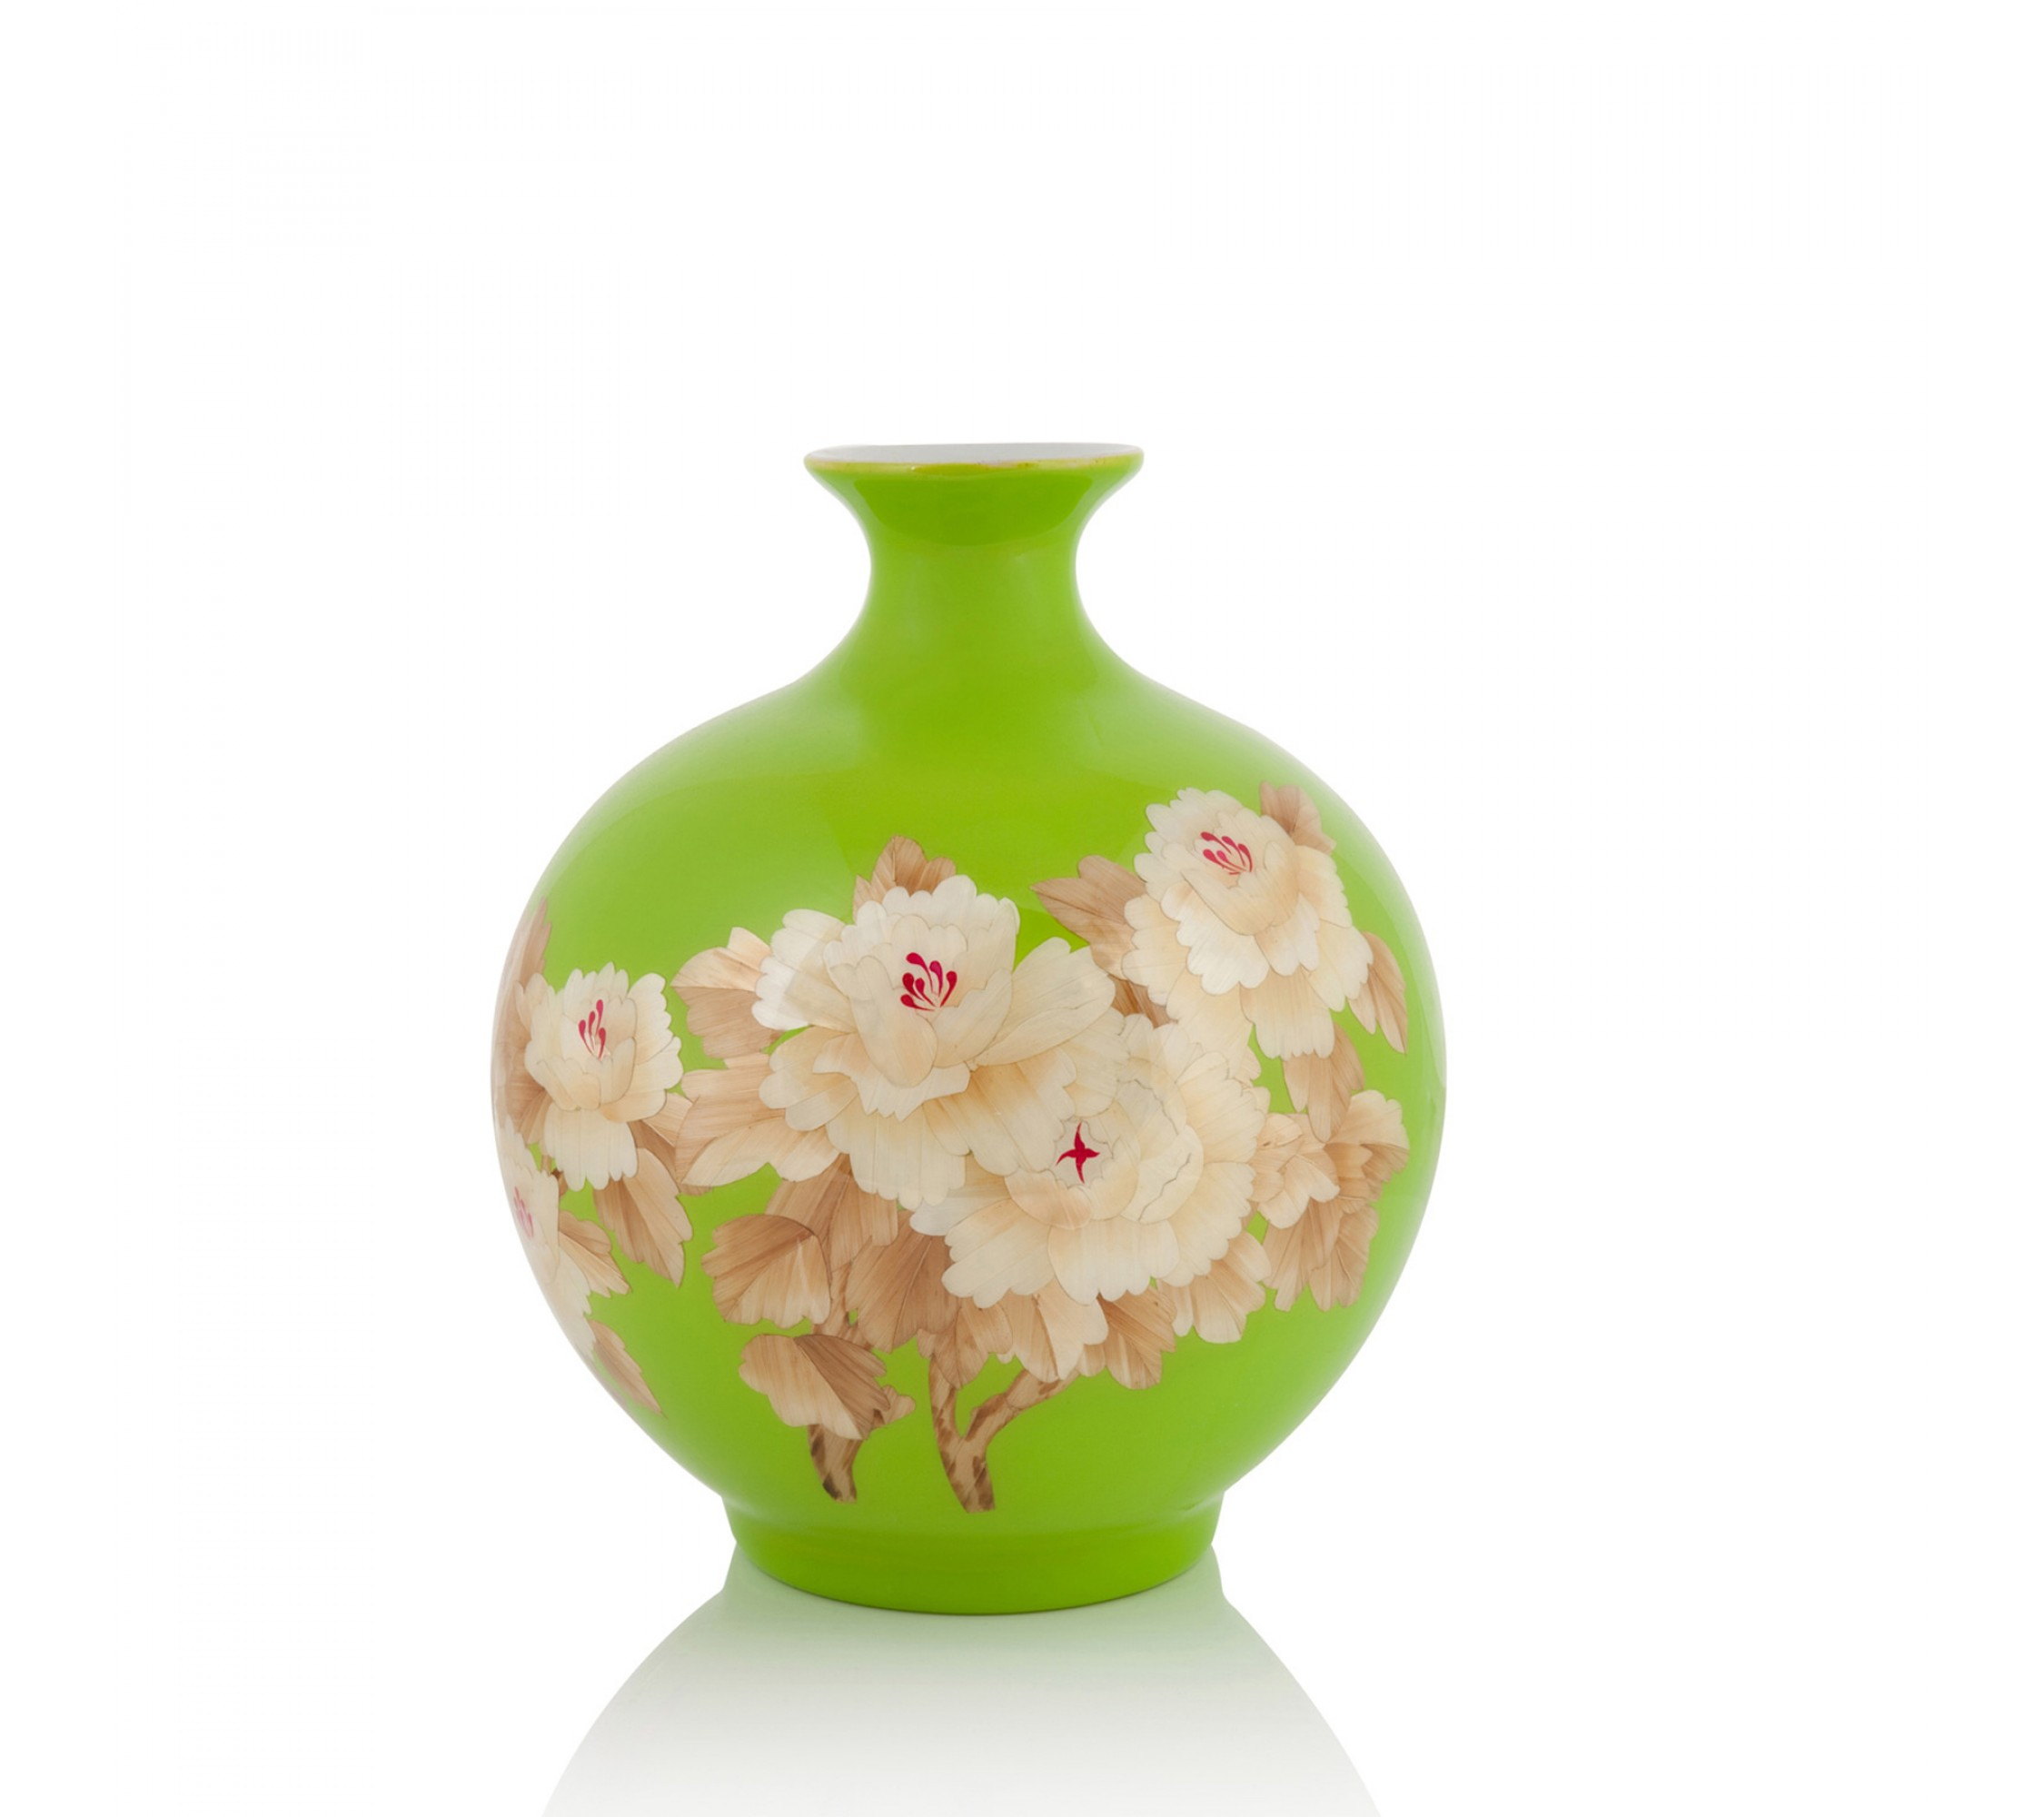 Vase Porzellan - Wheat Straw Sphere green